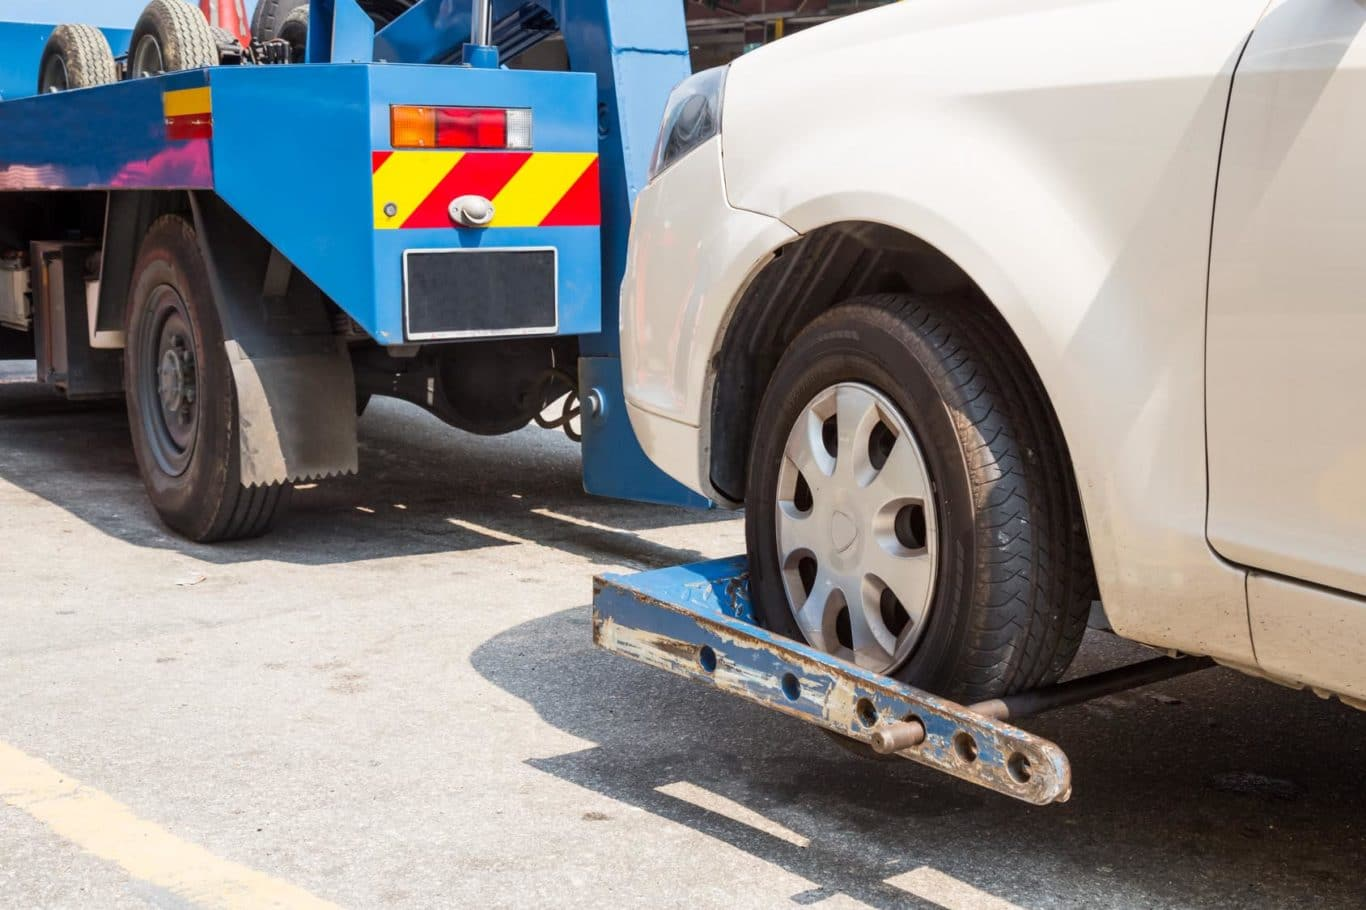 Moylagh, County Meath expert Roadside Assistance services